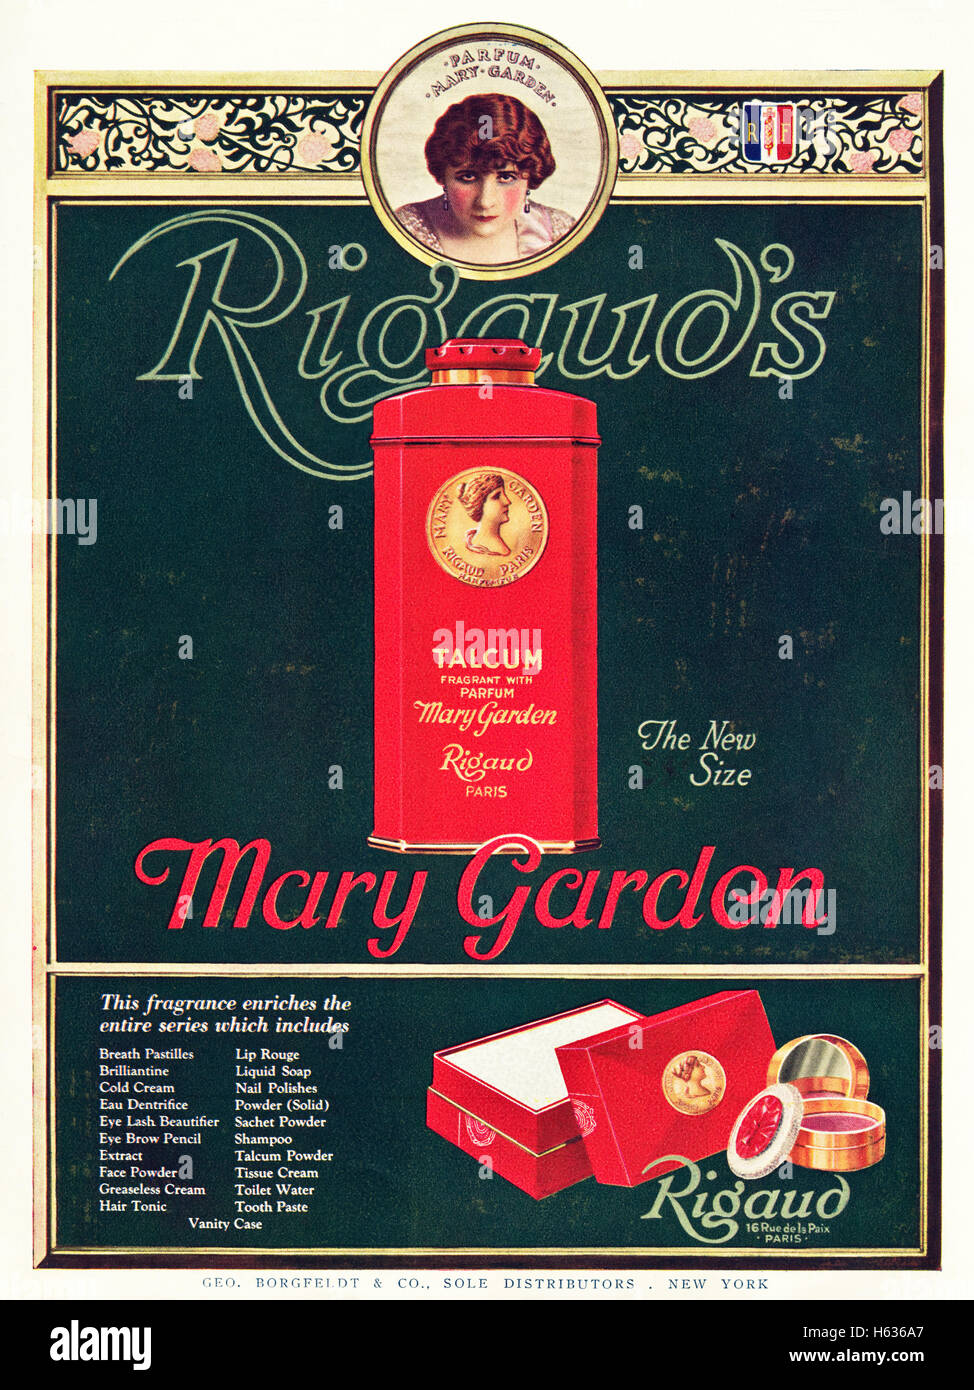 1920s advertisement advert from original old vintage American magazine dated 1921 advertising Mary Garden Rigaud - Stock Image